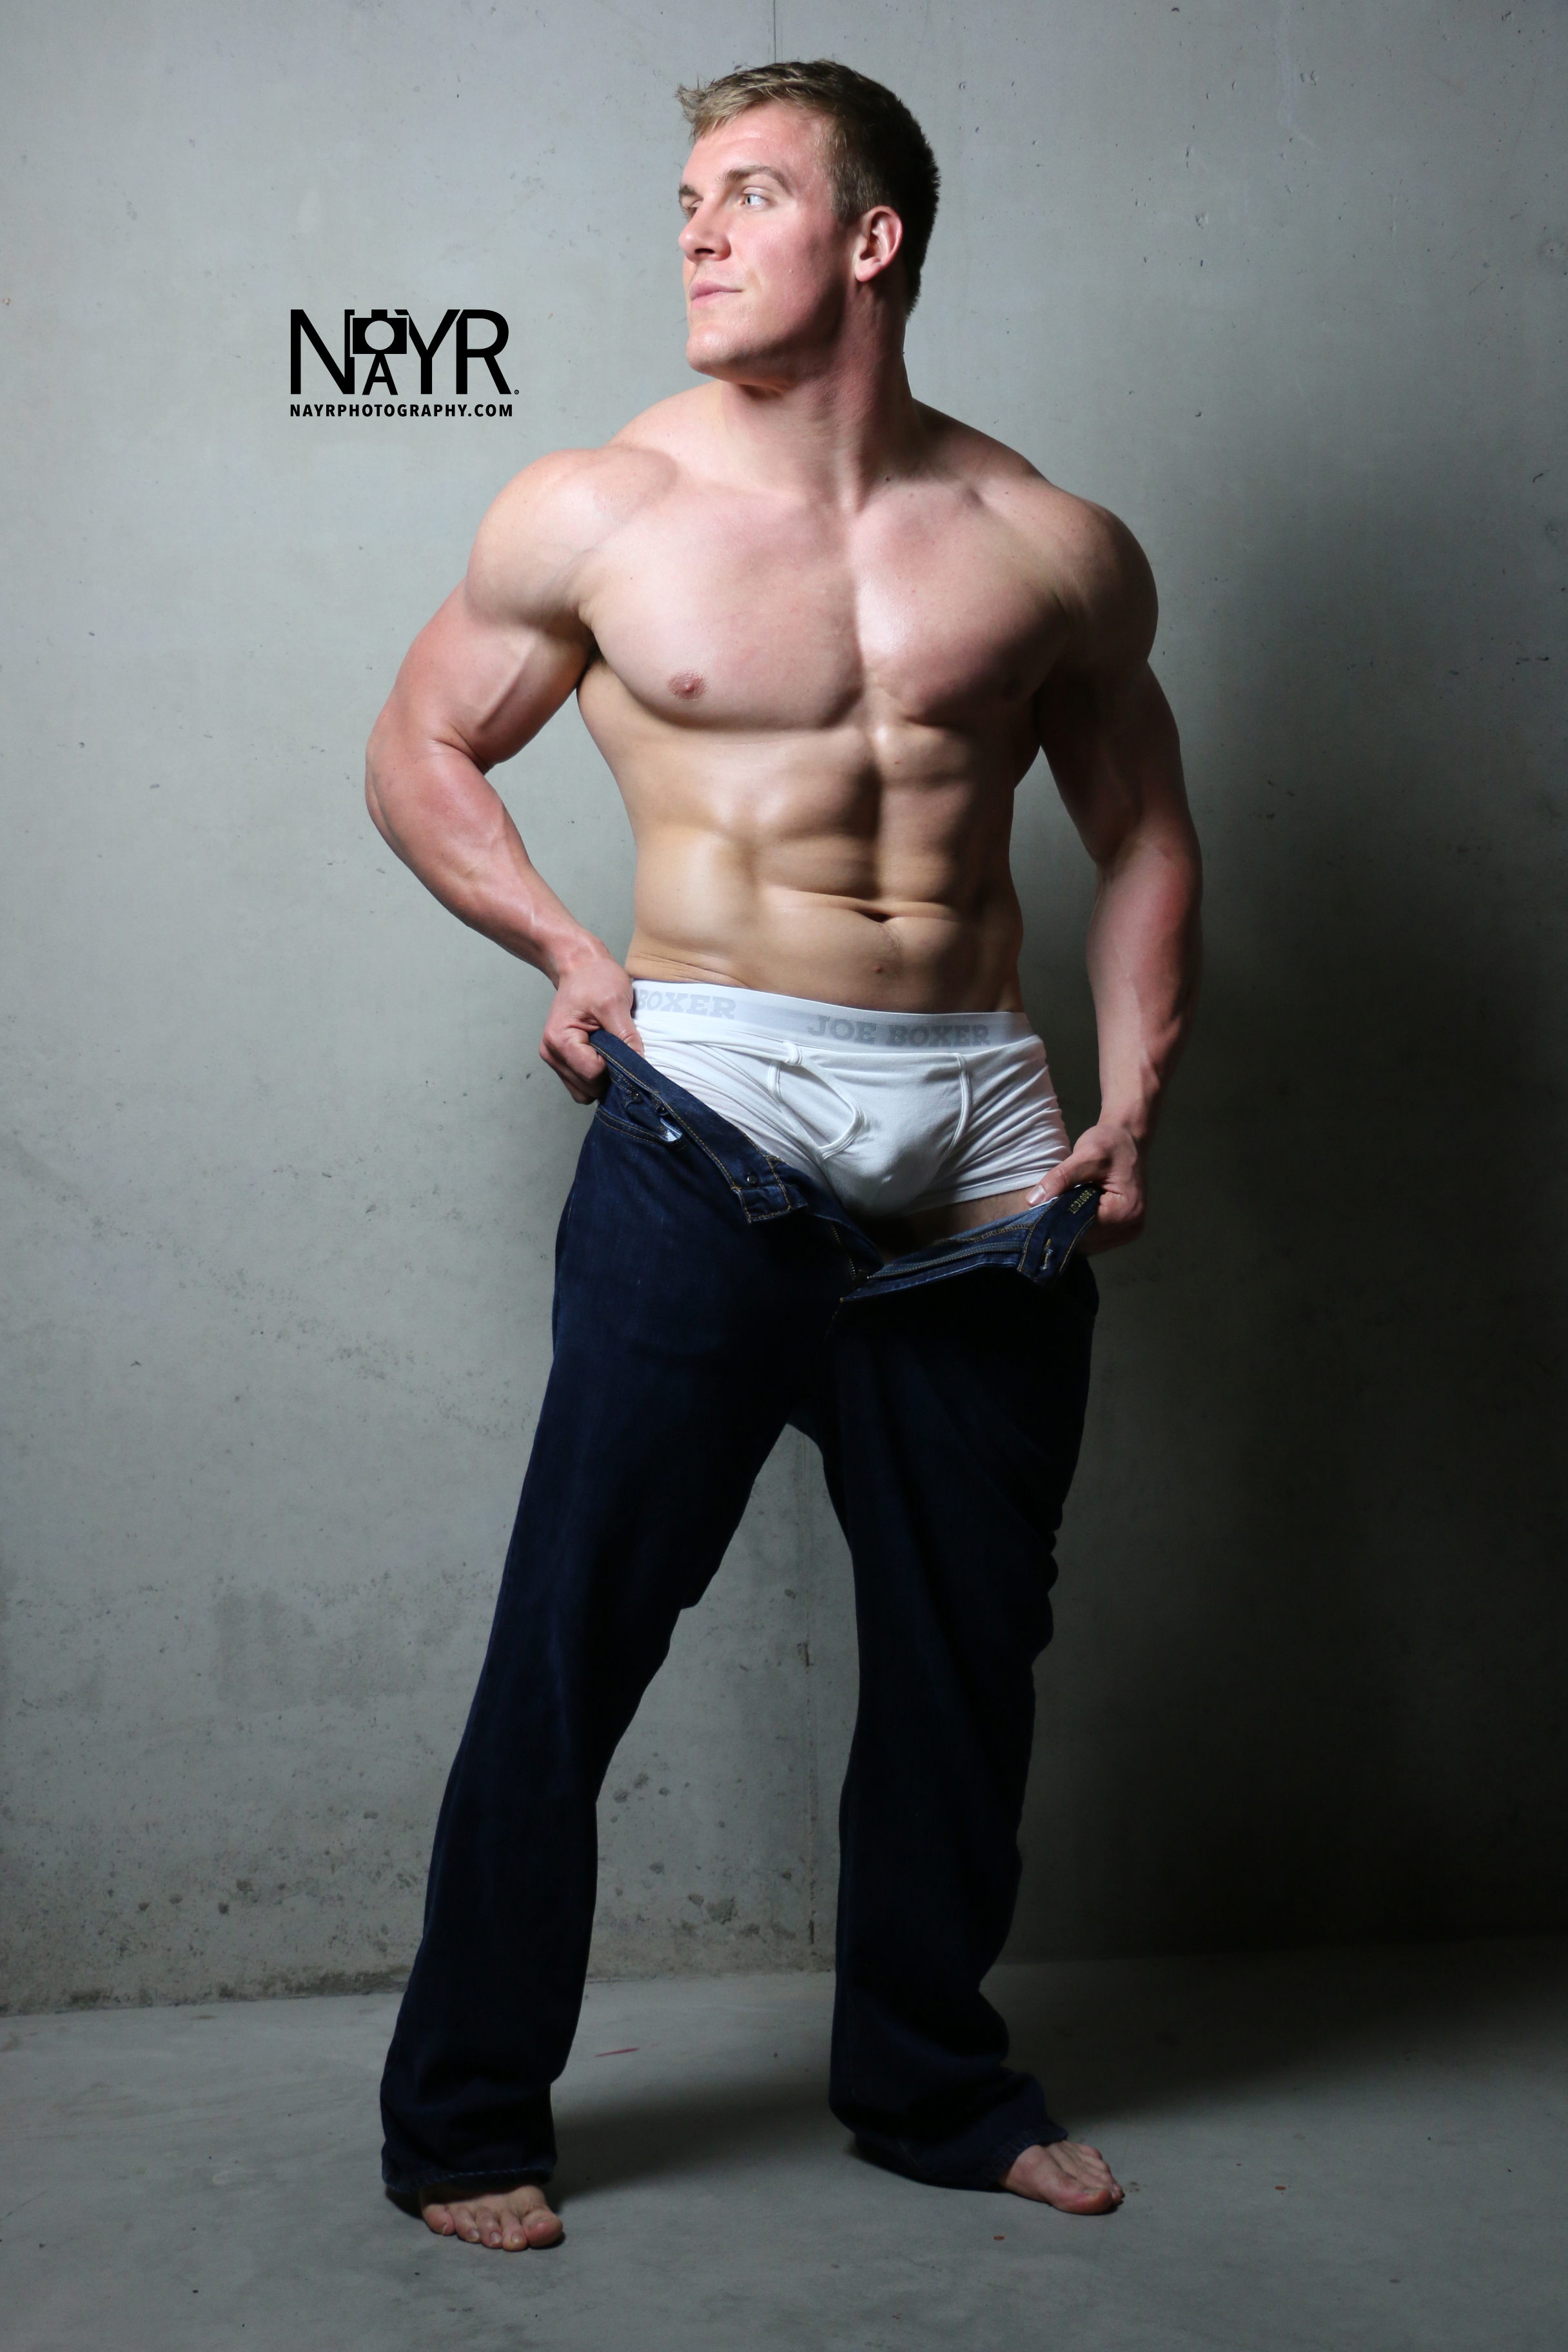 Fitness Models On Instagram Overtaking Celebrities As Role: Brandon Felus By NAYR Photography